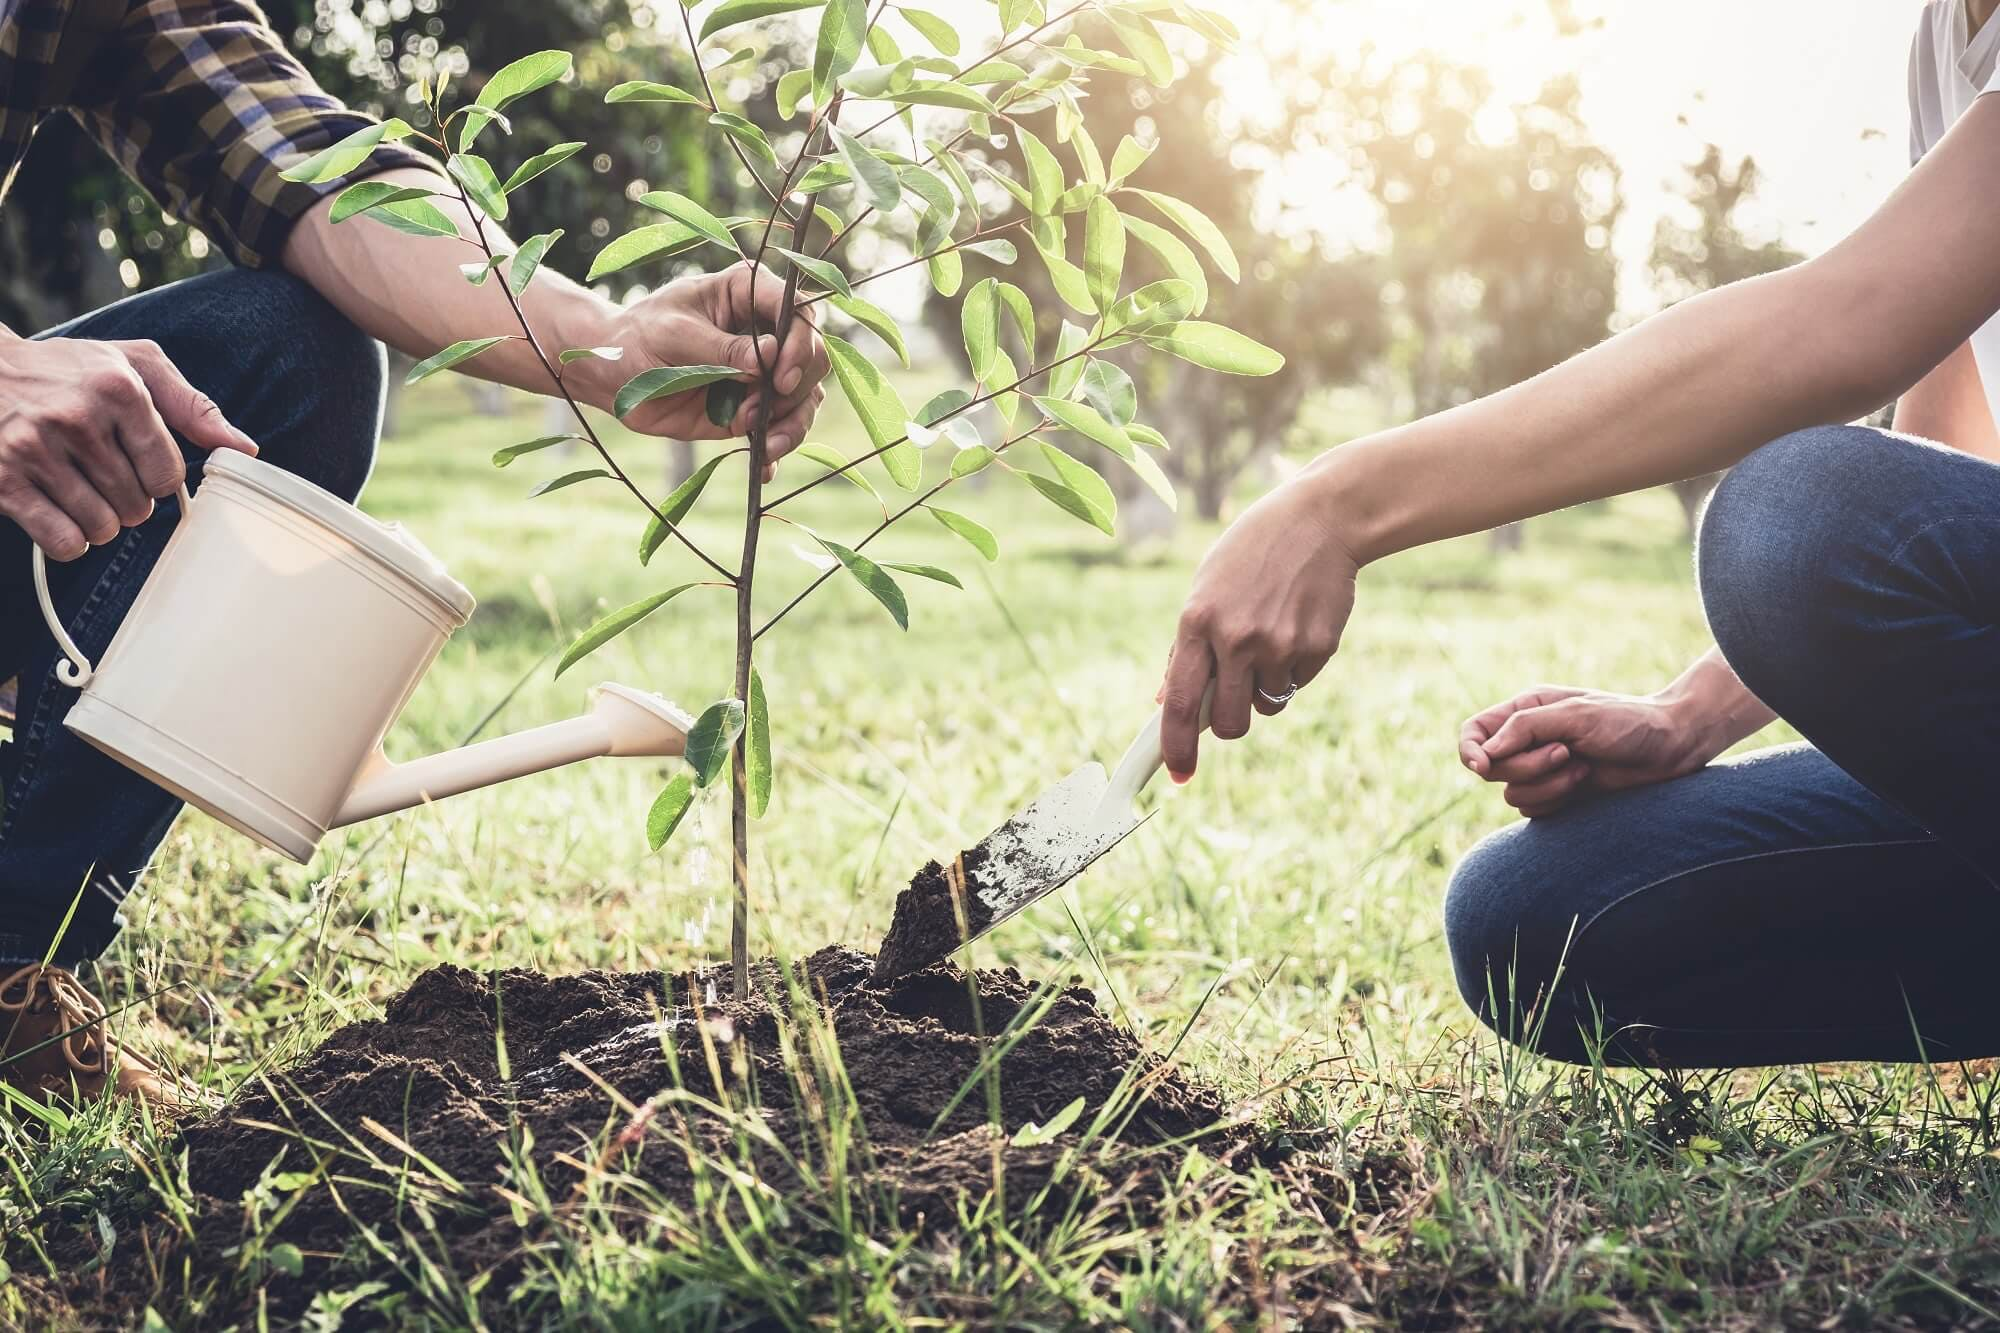 Two persons planting a tree